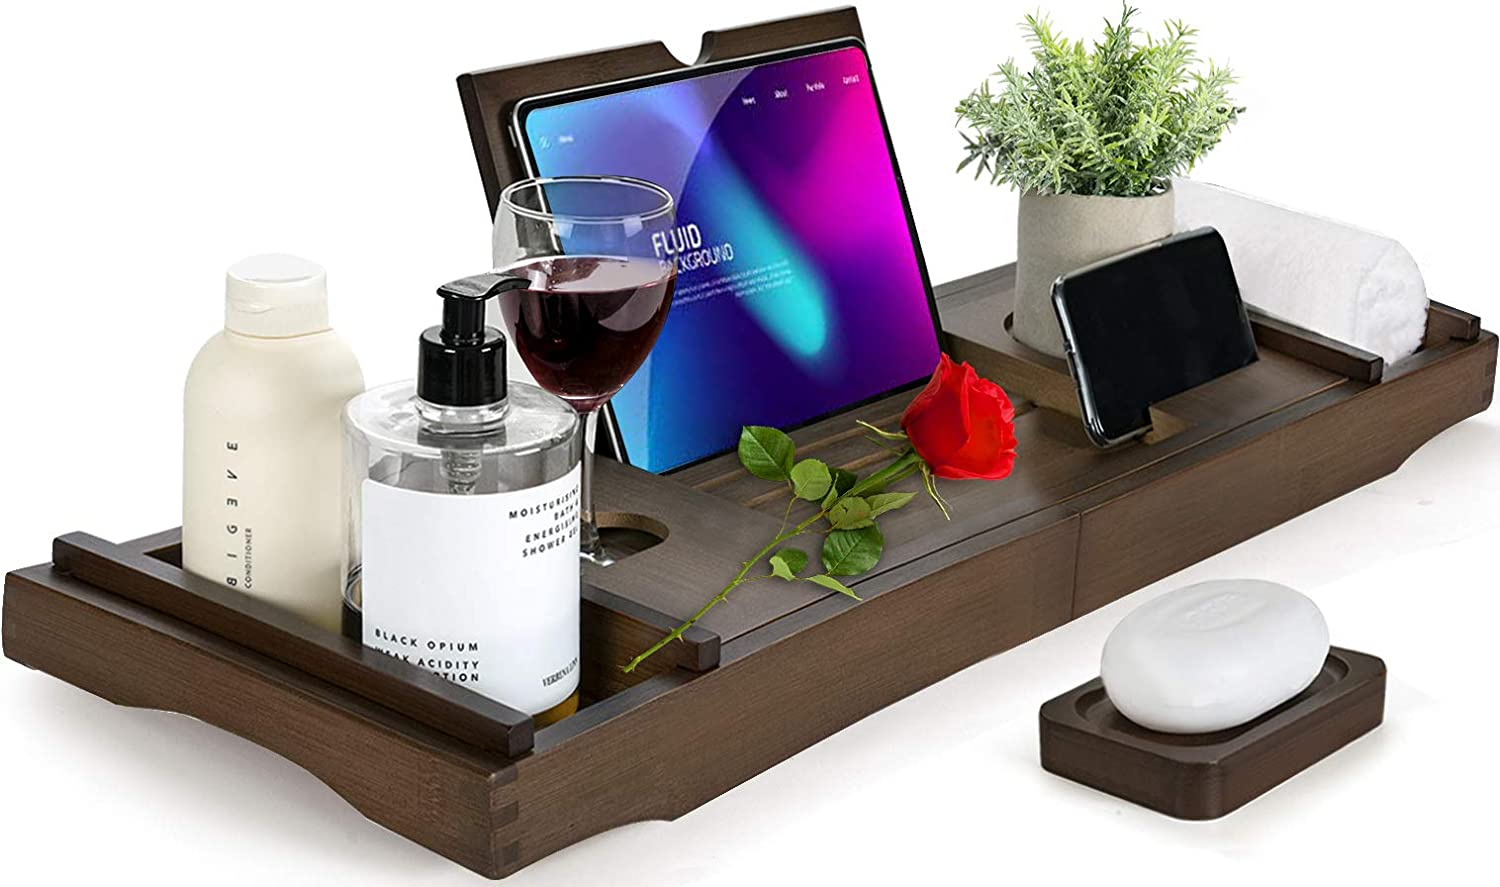 HBlife Bamboo Bathtub Caddy Tray [Durable, Non-Slip], One or Two Person Bath and Bed Tray, Extending Sides Fits Any Tub, Cellphone iPad and Wineglass Holder, Free Soap Holder (Coffee Color)